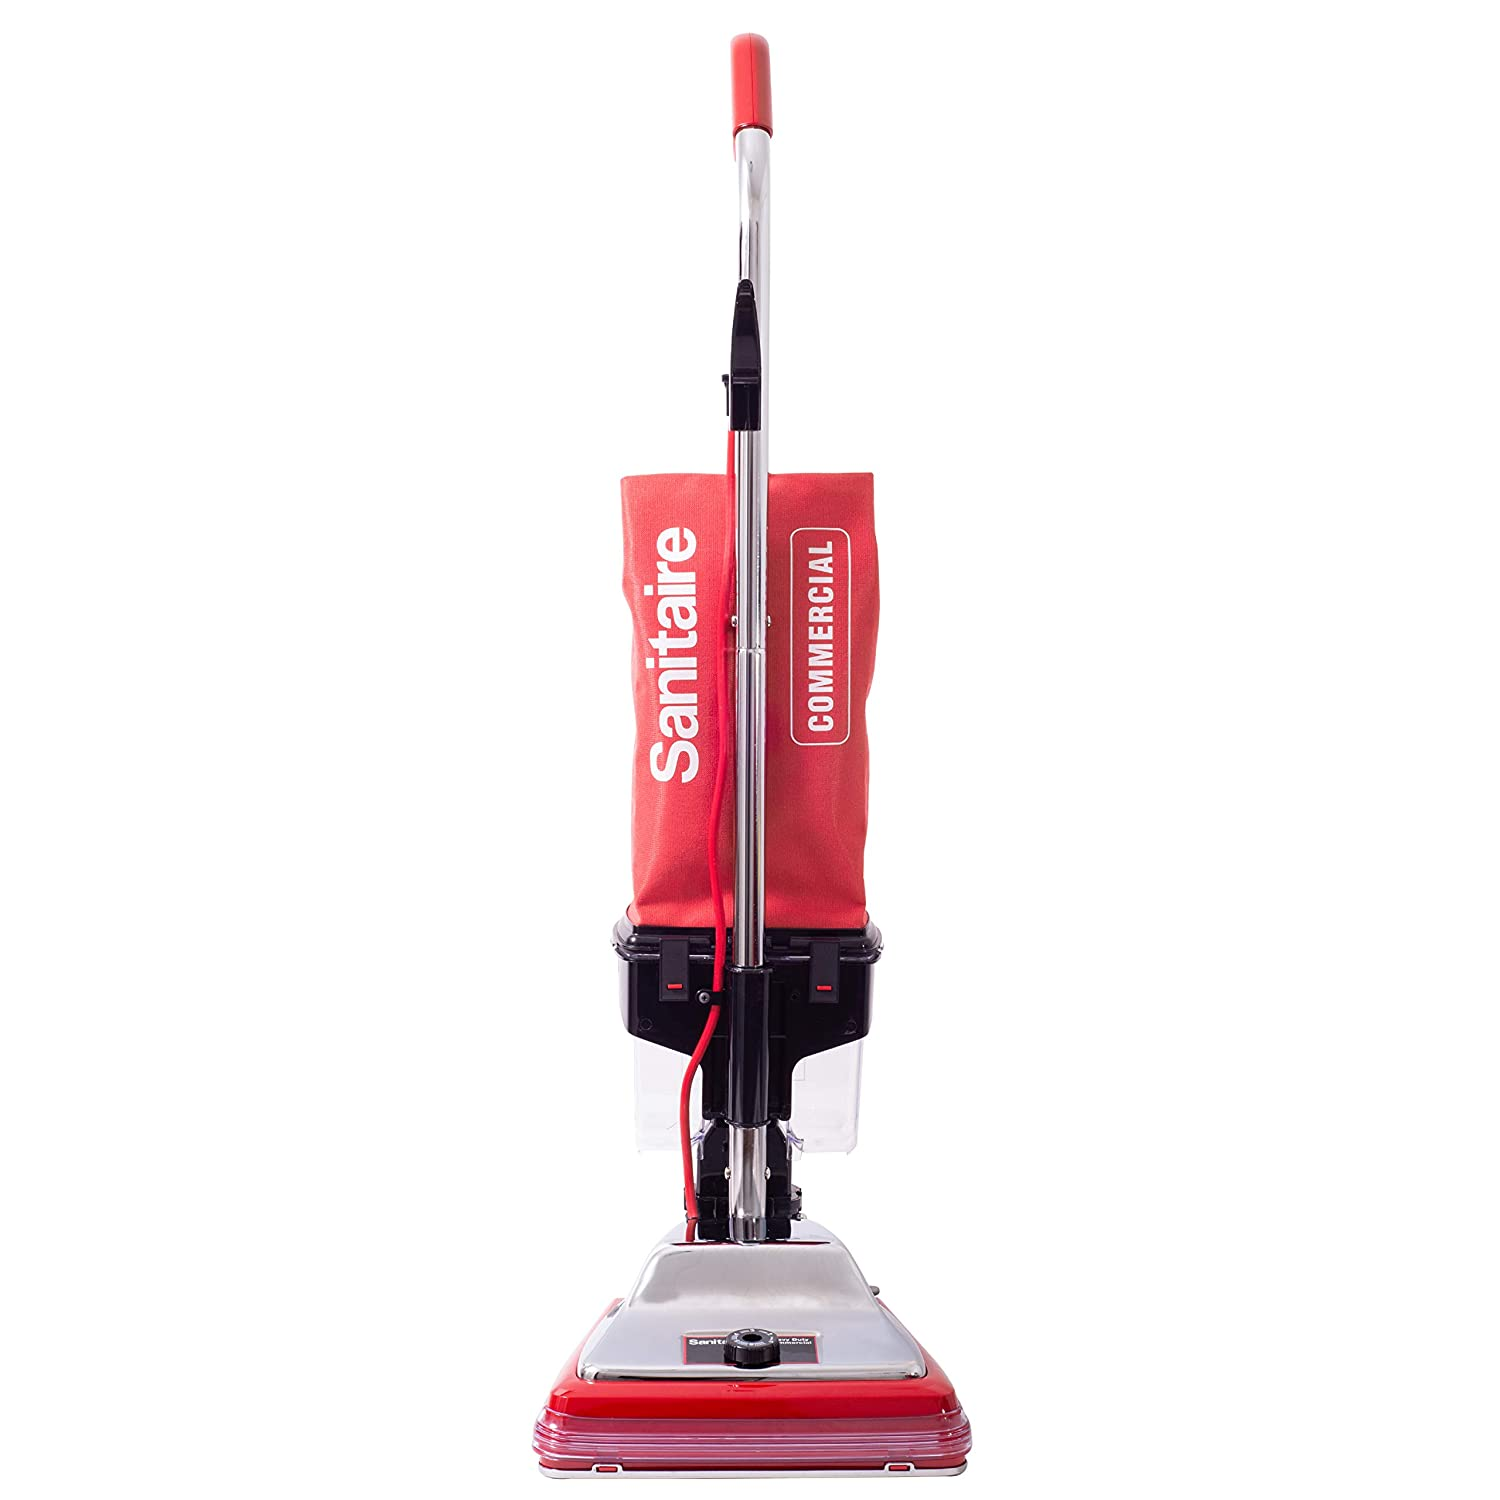 Sanitaire Tradition Upright Commercial Vacuum with Removable Dirt Cup, SC887E